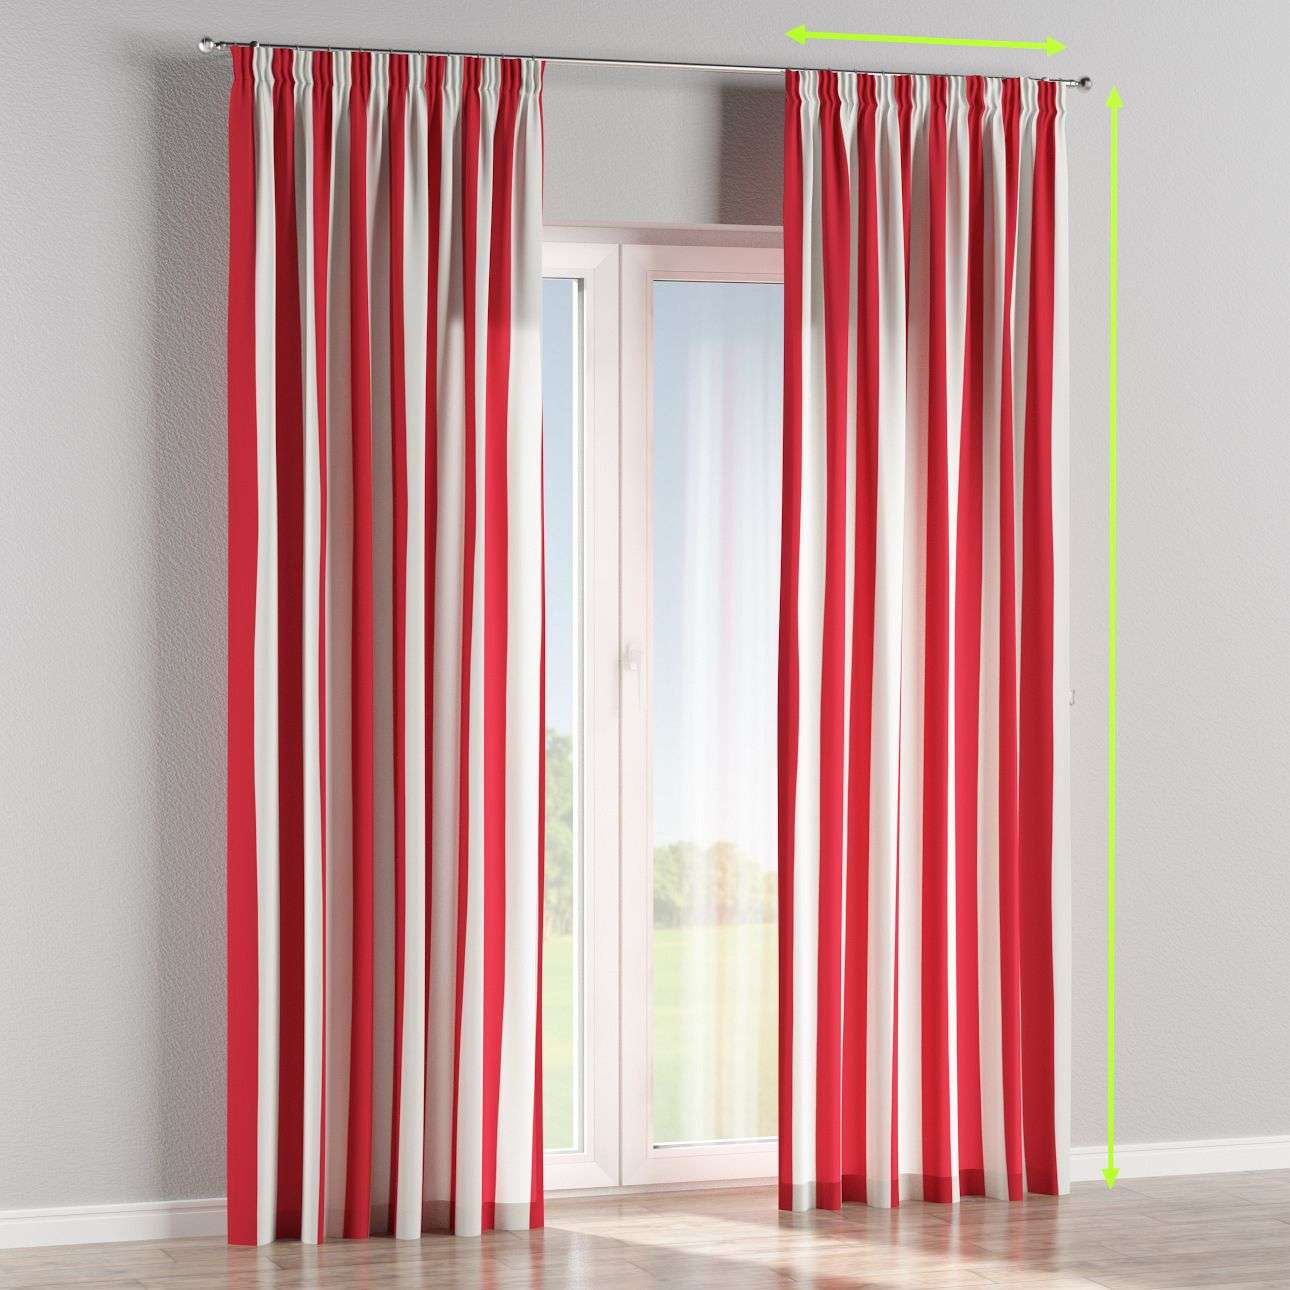 Pencil pleat lined curtains in collection Comics/Geometrical, fabric: 137-54